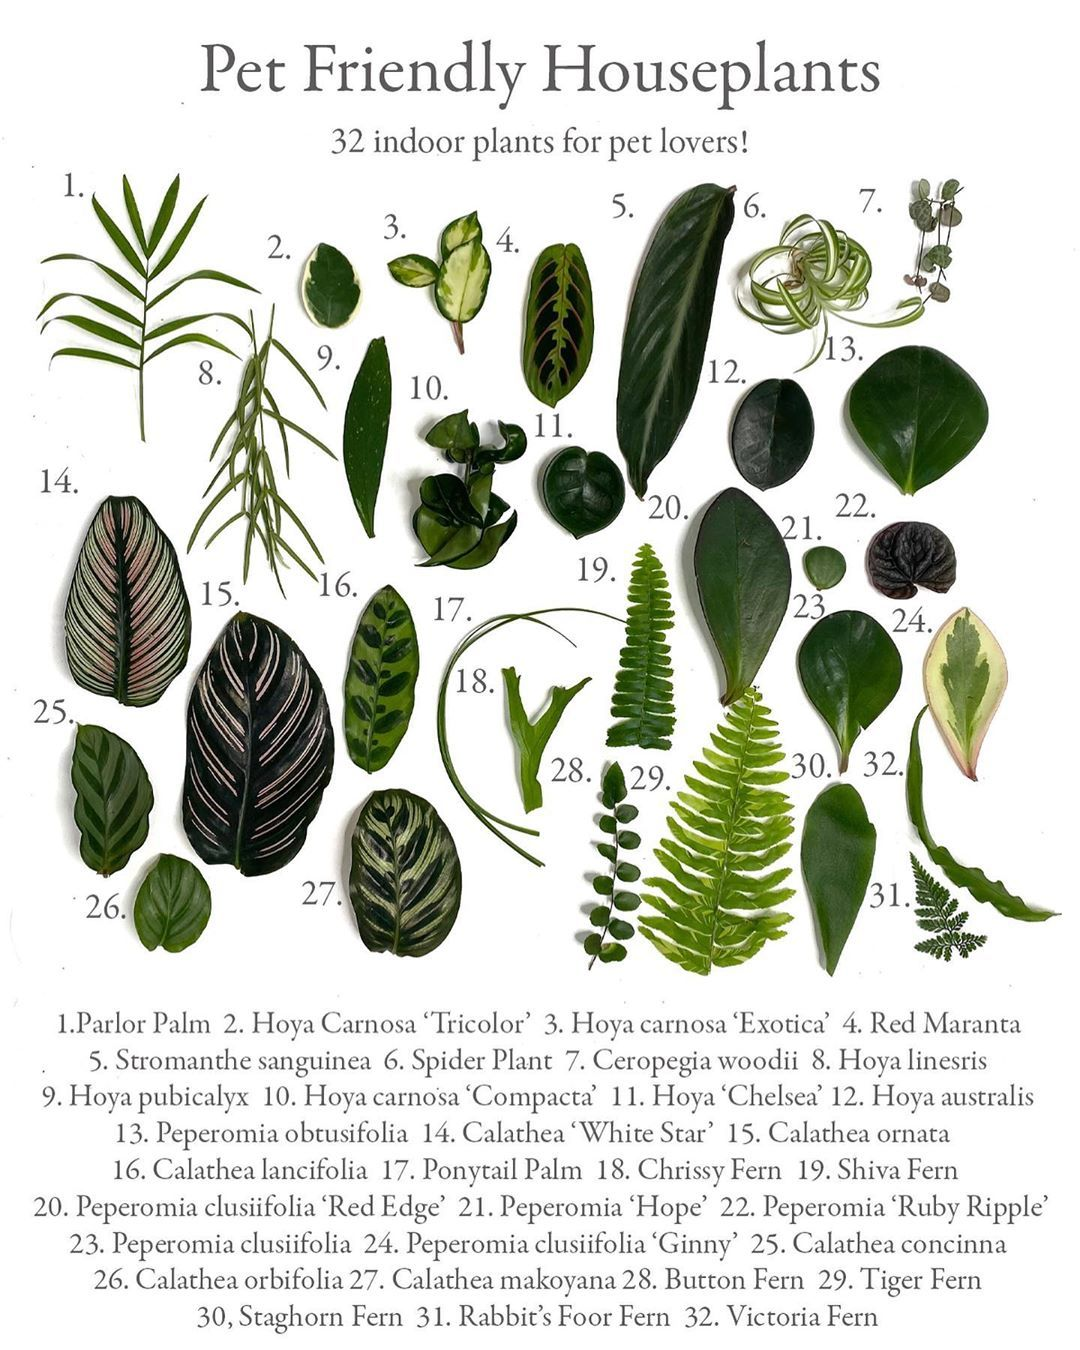 Planterina On Instagram Here Is A Leaf Chart Of All Of The Pet Friendly Plants We Have Or Will Have Very Soon On Plante In 2020 Plants Safe House Plants Plant Decor